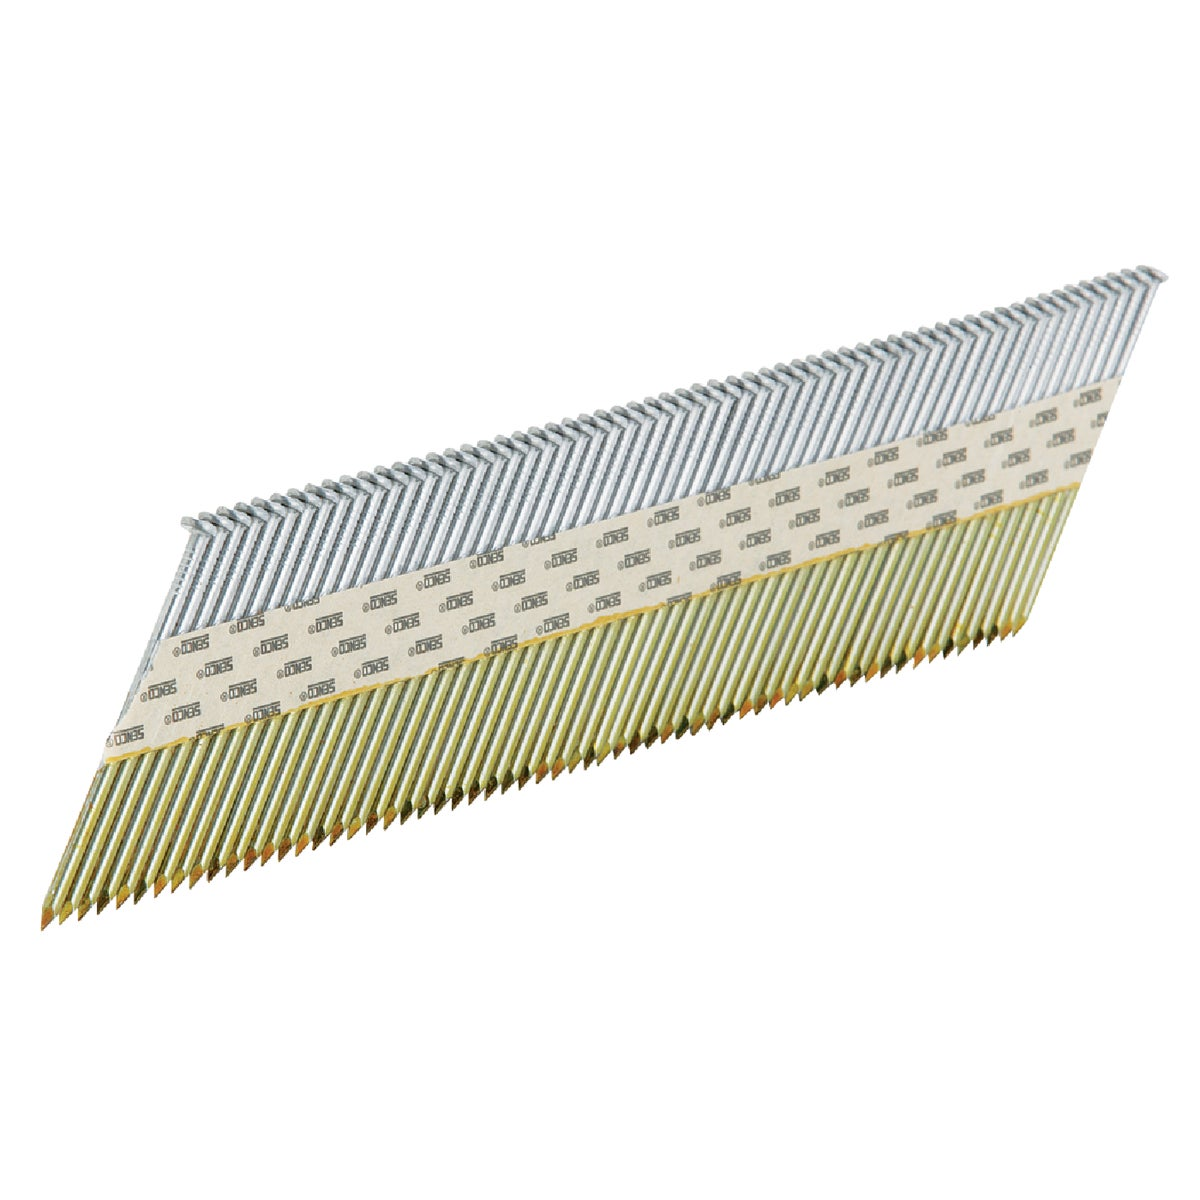 "3"" FRAMING NAIL - KC27APBX by Senco Brands"